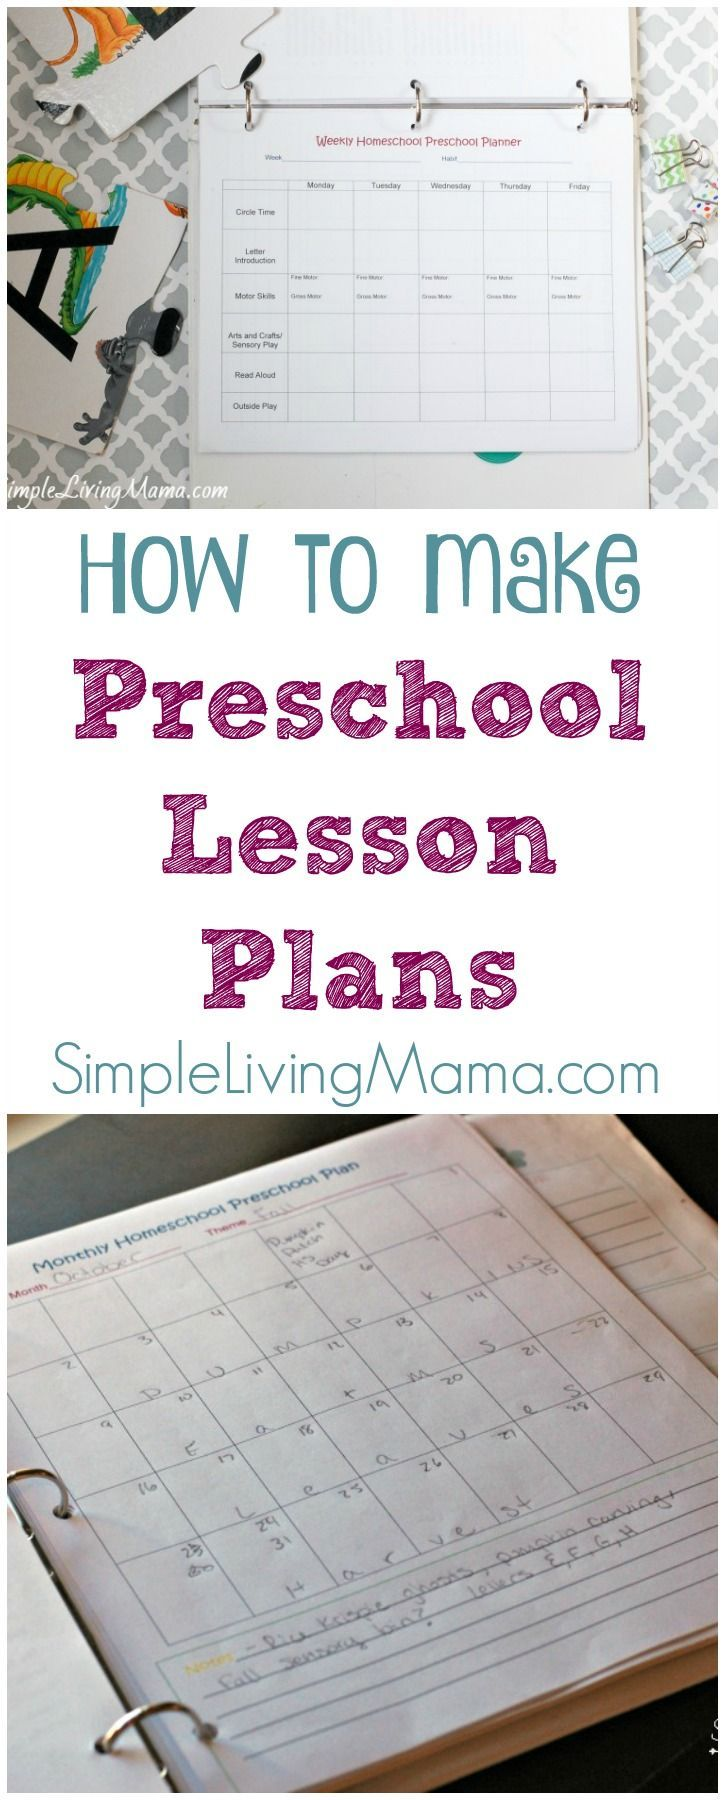 How To Make Preschool Lesson Plans